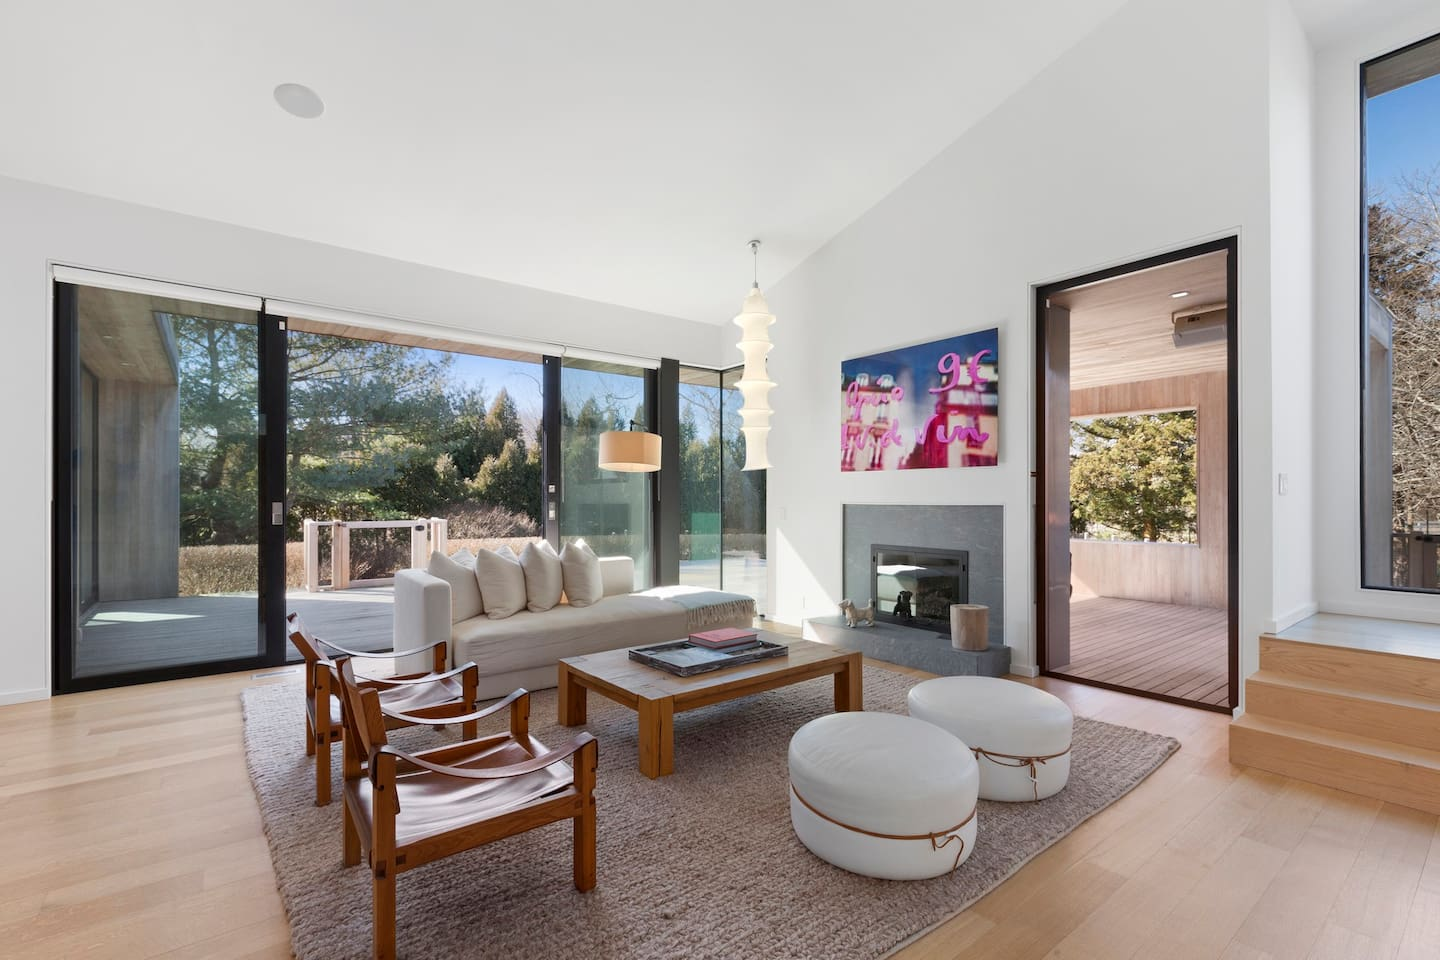 """Living Room """"Outdoor Indoor Living"""" - full dining table outside as well as L-sofa, loungers and outdoor fireplace on covered deck."""